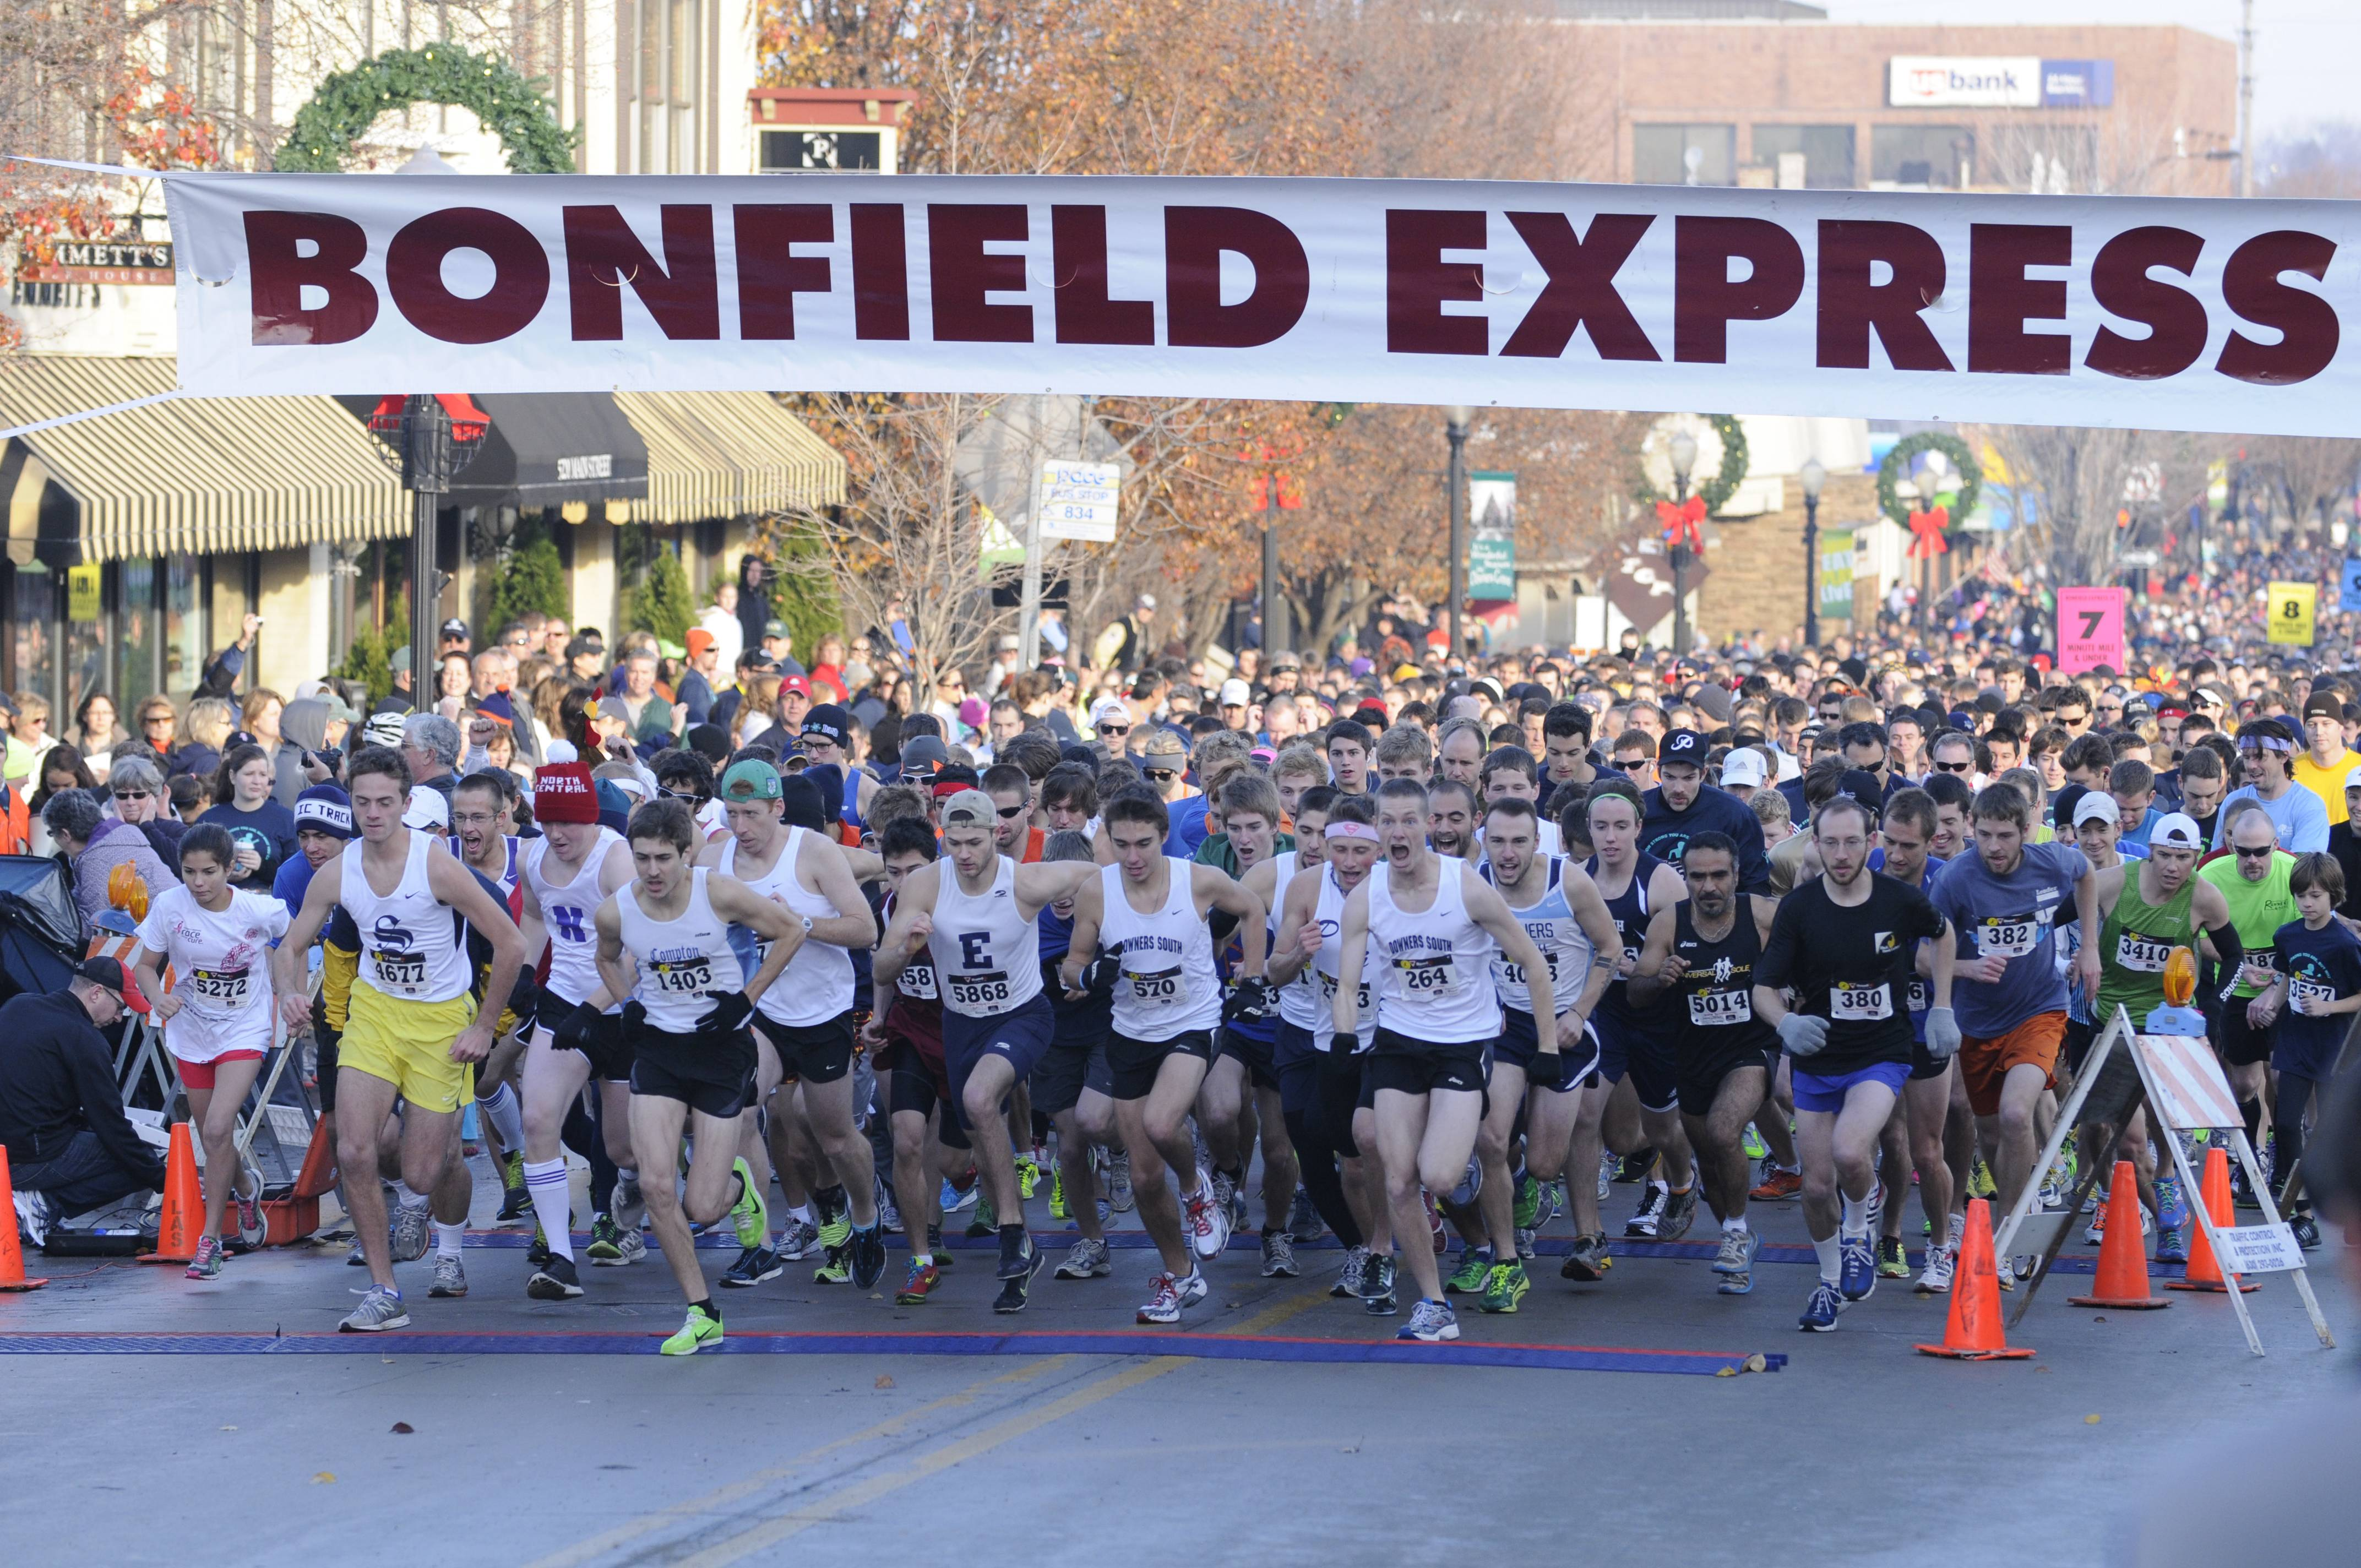 Start of the 2012 Bonfield Express 5K Run/Walk